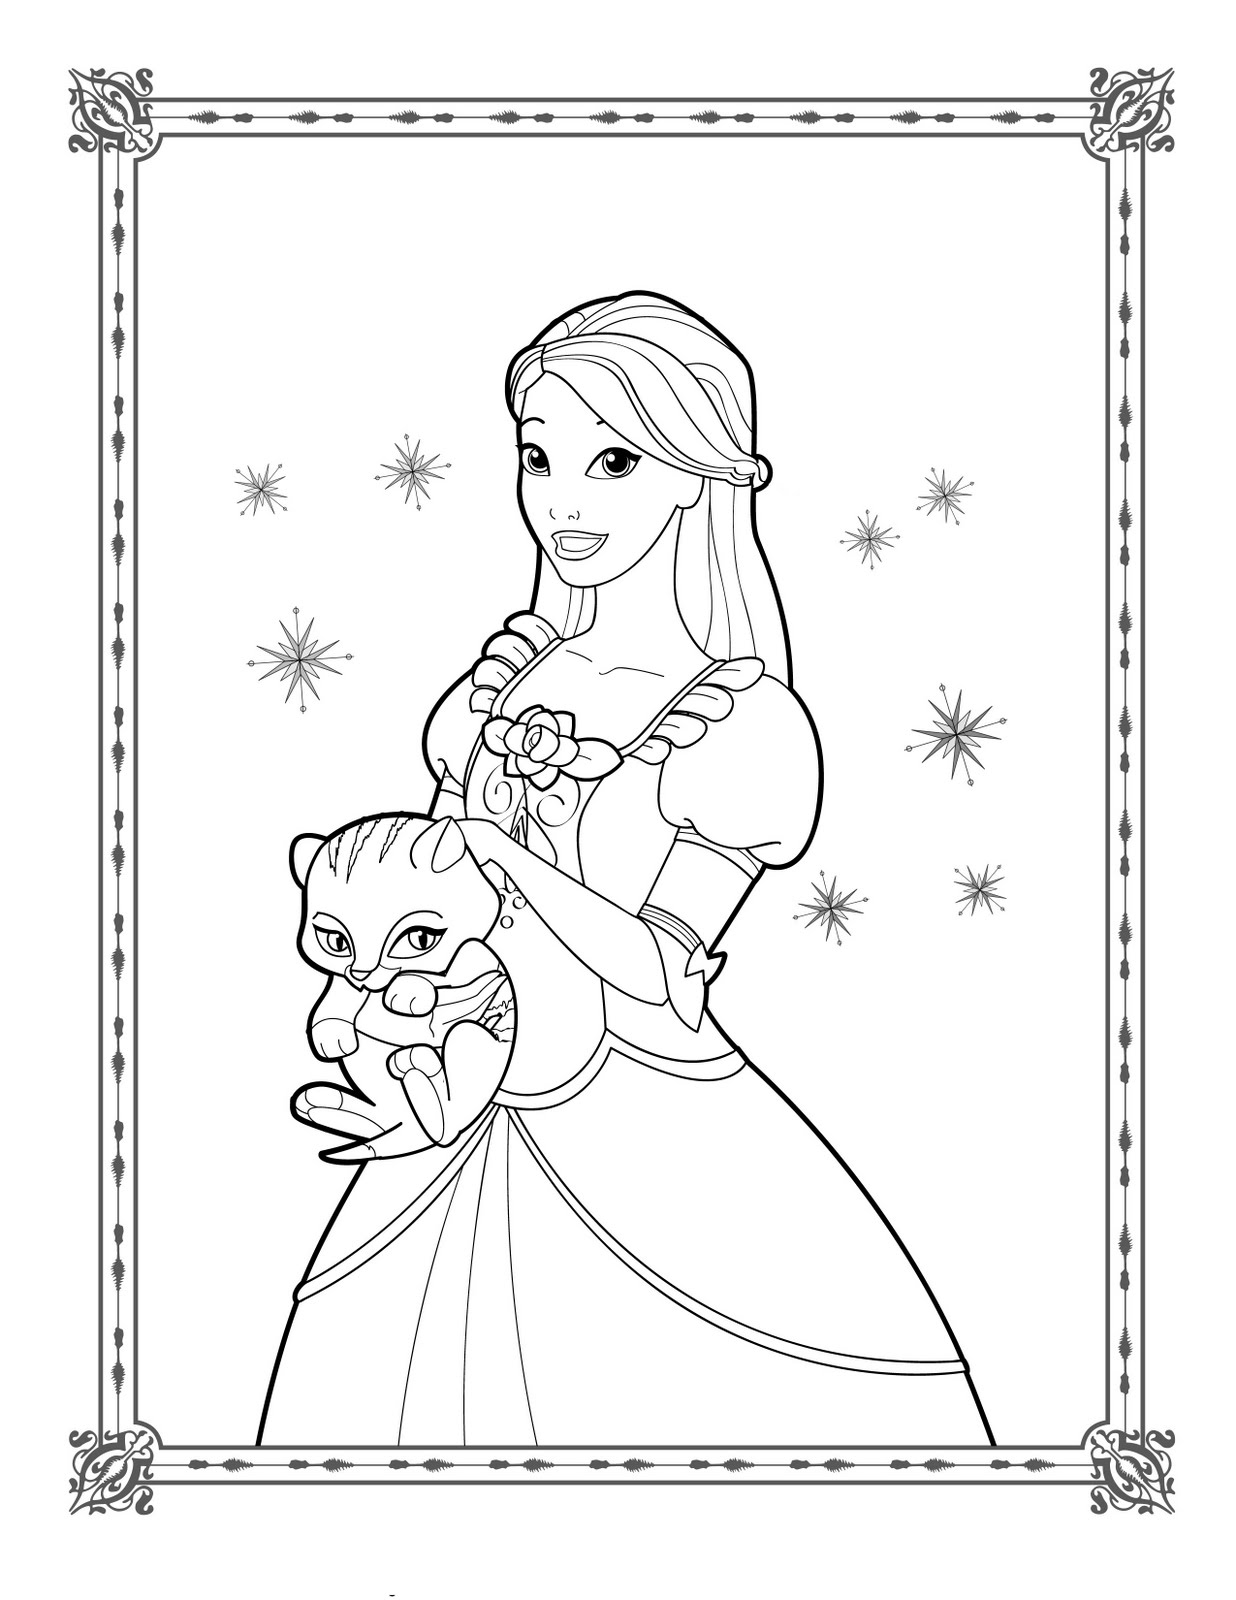 Unique Dessin Coloriage Barbie Princesse